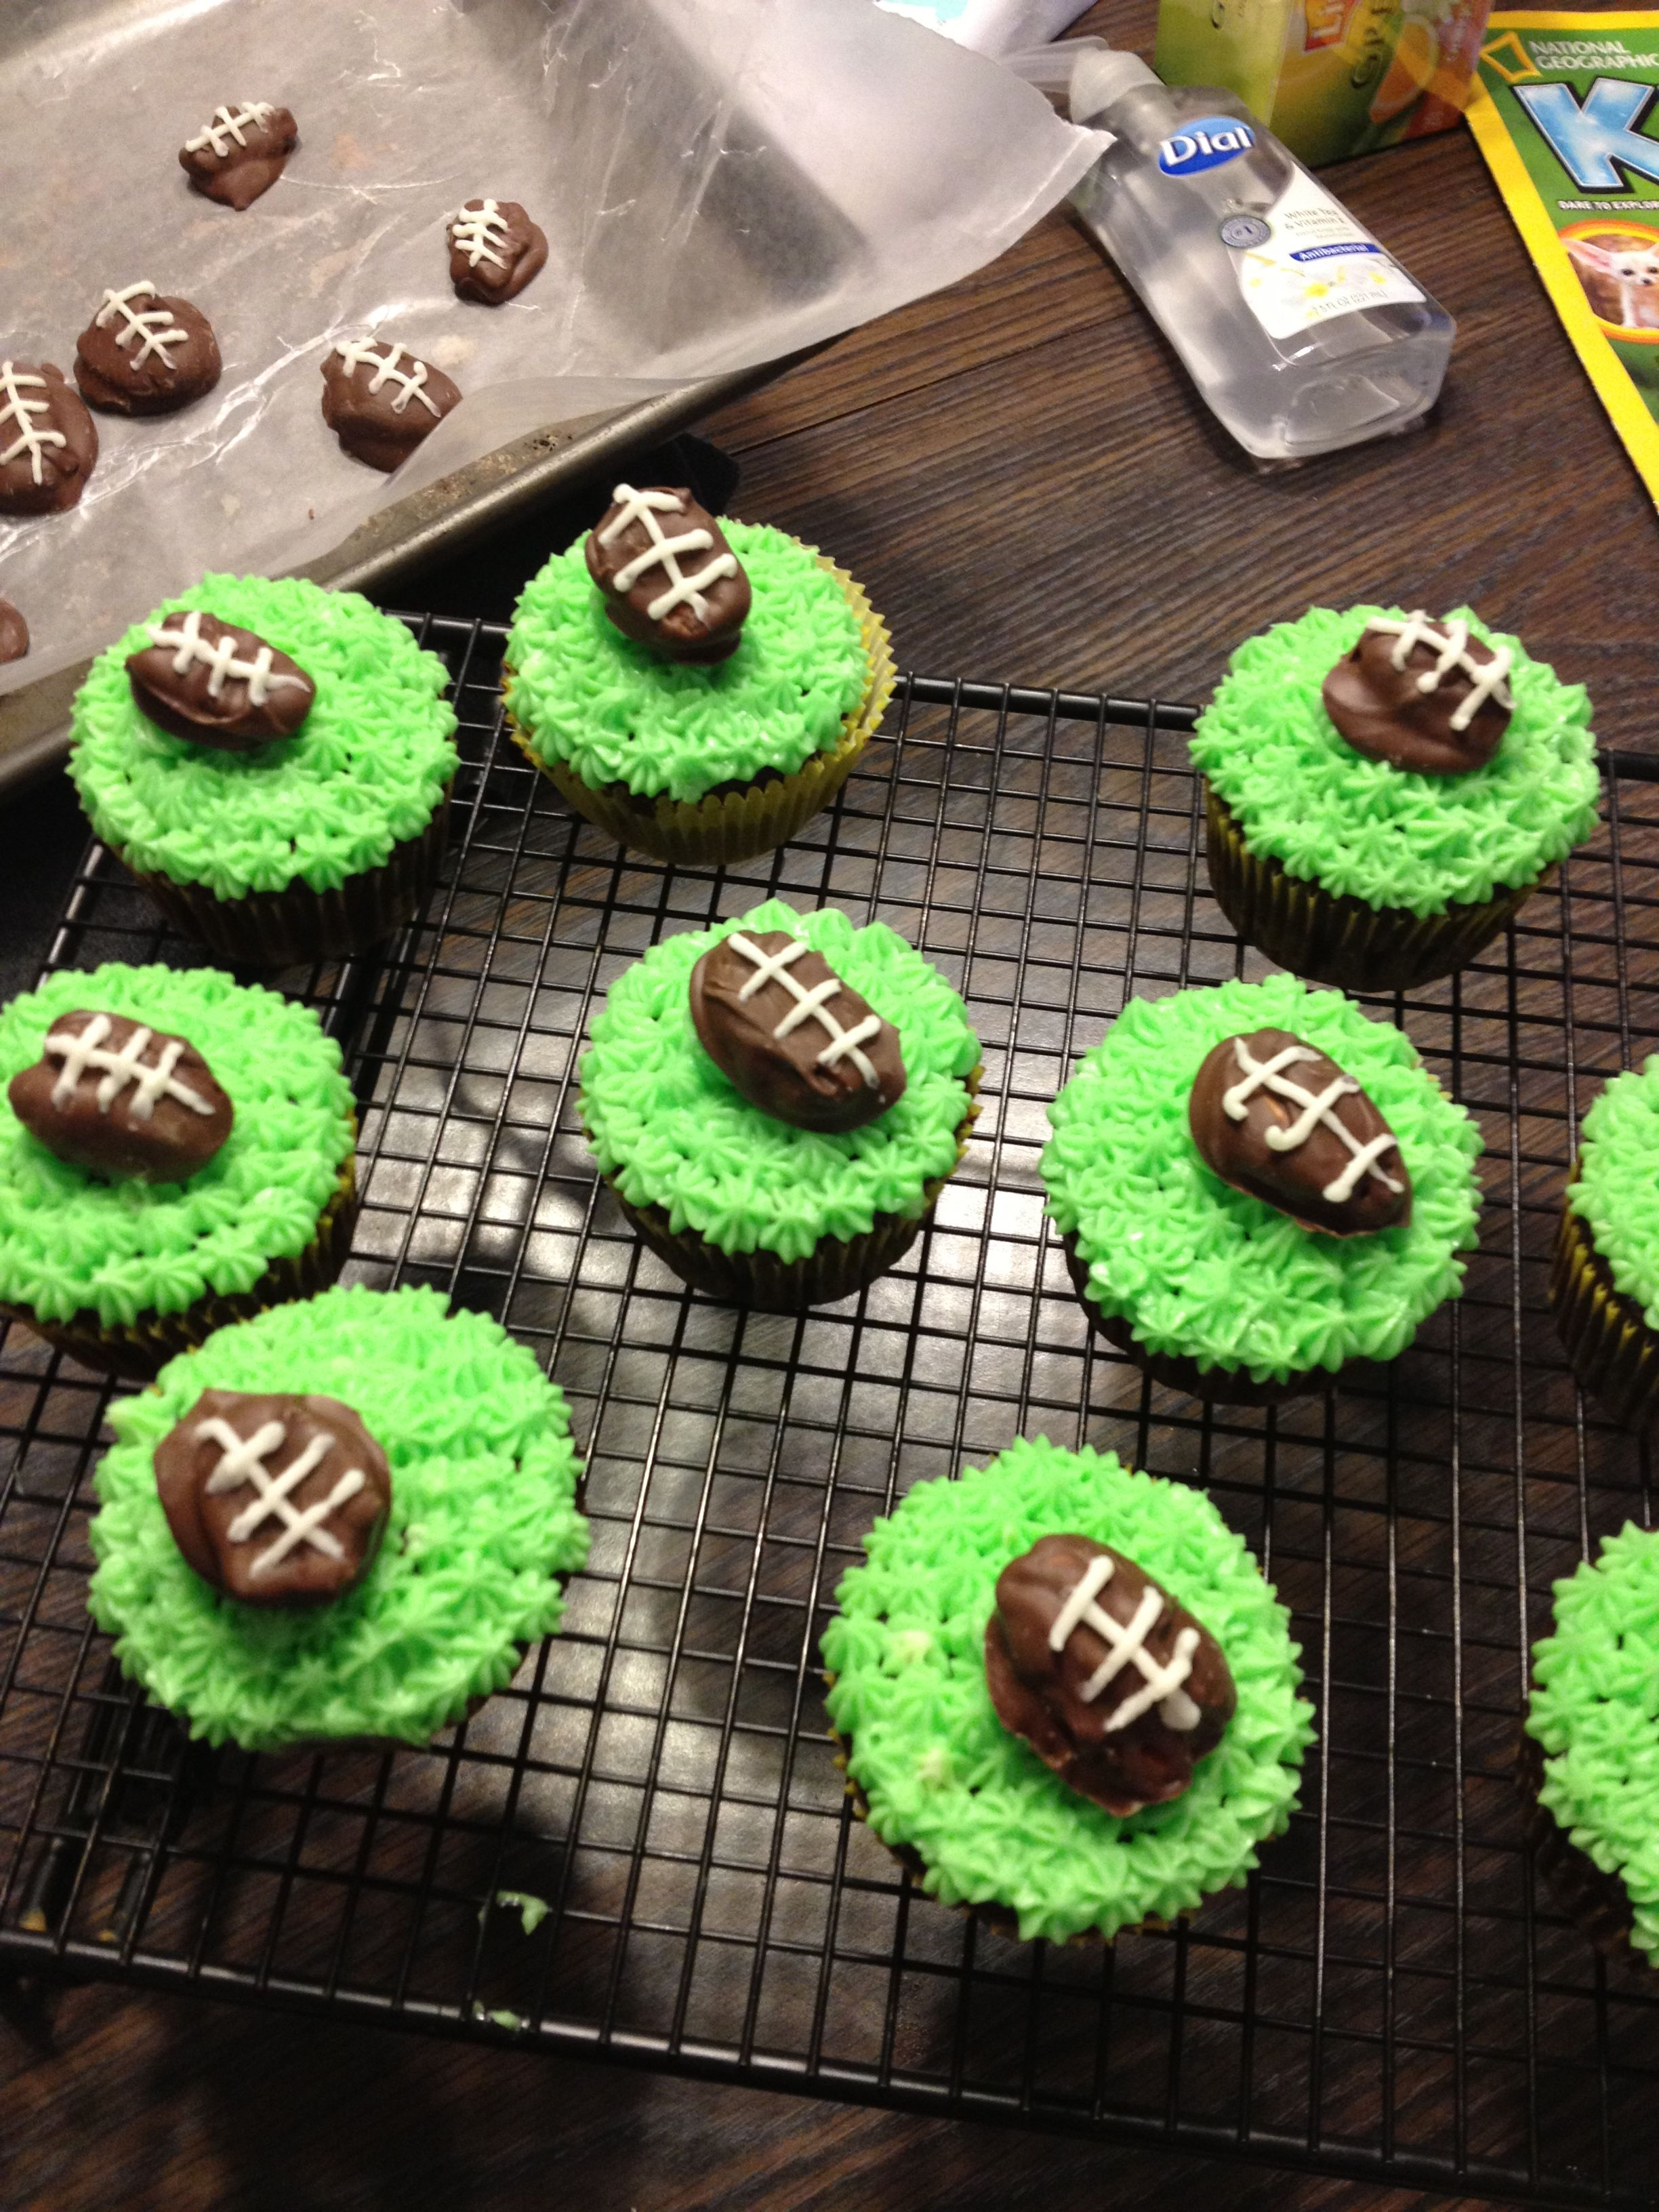 Super Bowl cupcakes: chocolate covered pecan football and star decorating  tip with green icing for grass